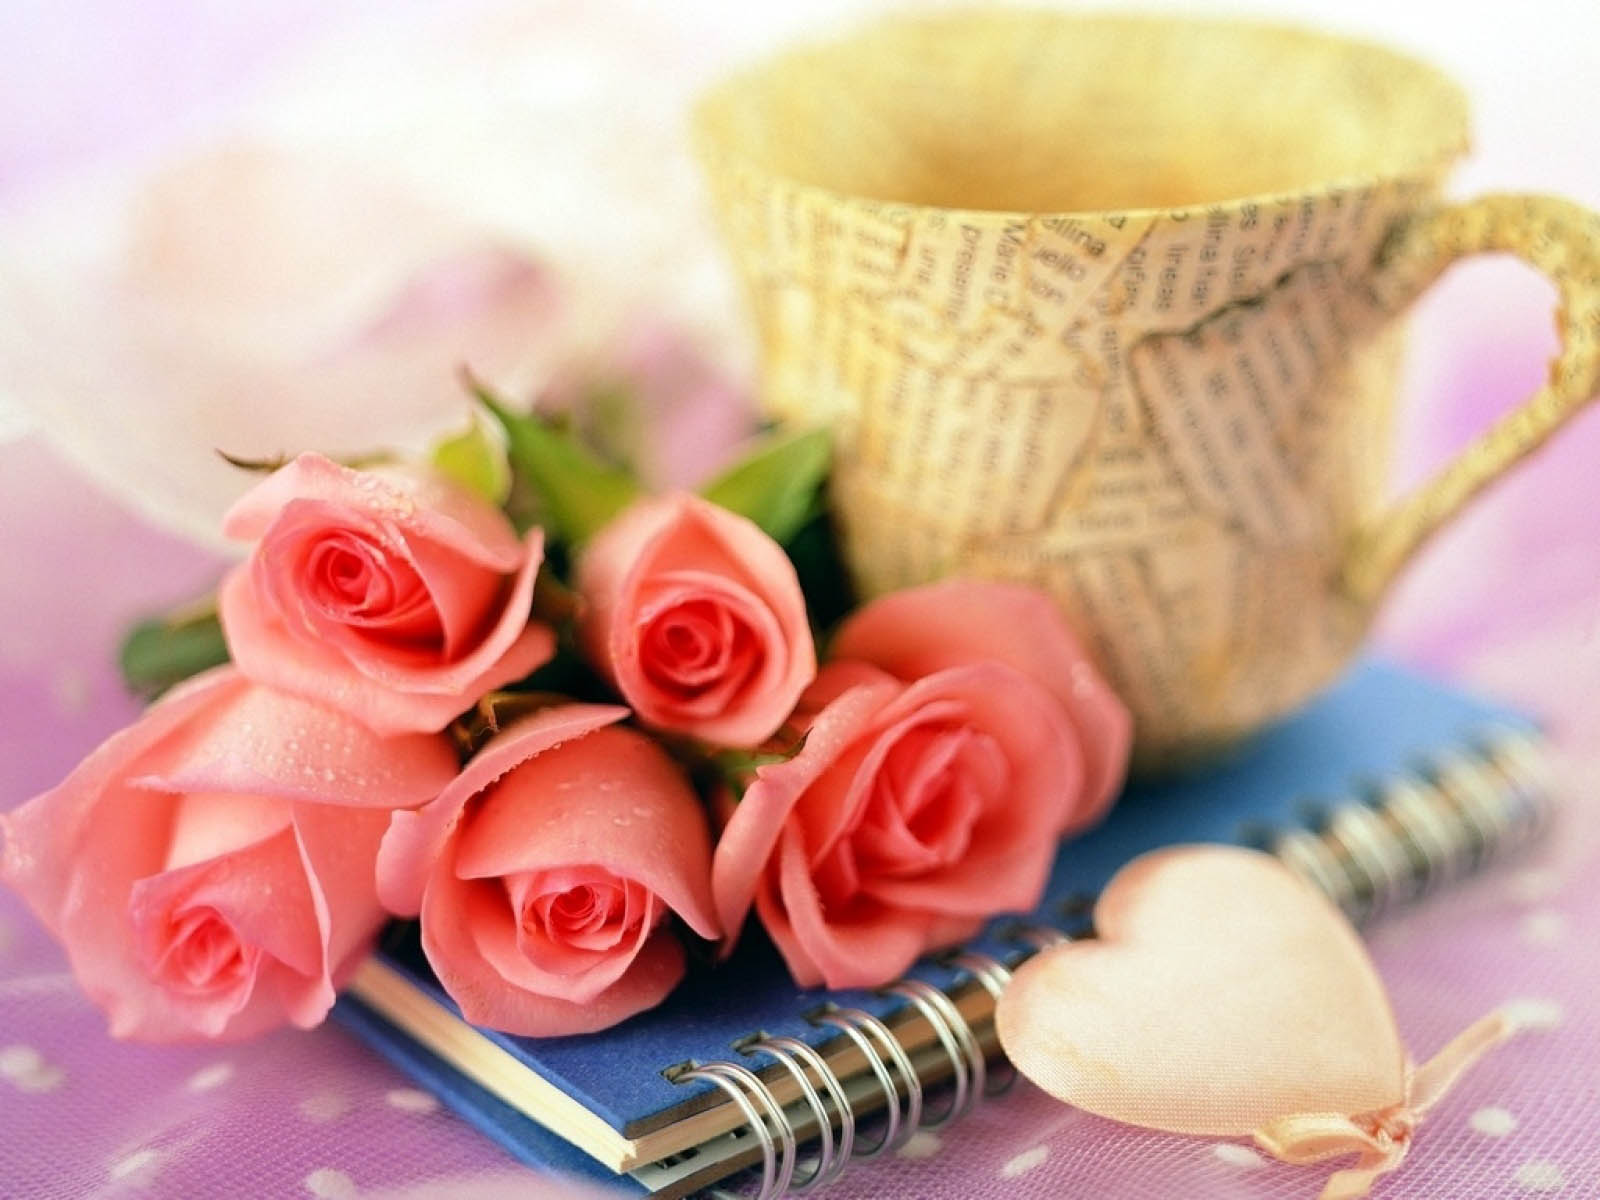 Cute baby hd wallpaper roses wallpapers roses wallpapers mightylinksfo